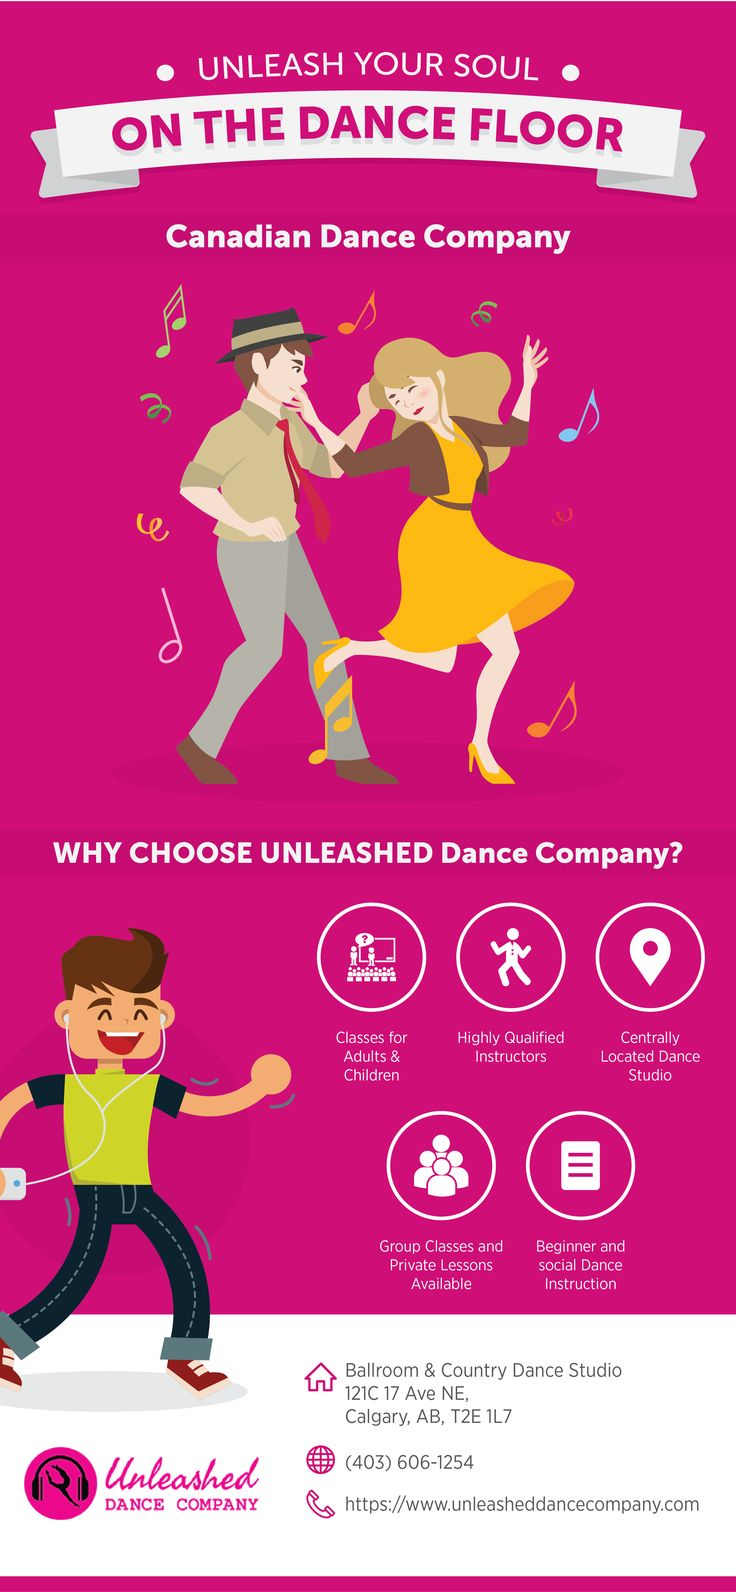 The launch of Unleashed was done with the endeavour to share with the Alberta & Canadian dance community her vast knowledge of dance, kinesiology, and anatomy while creating a fun and safe learning environment.